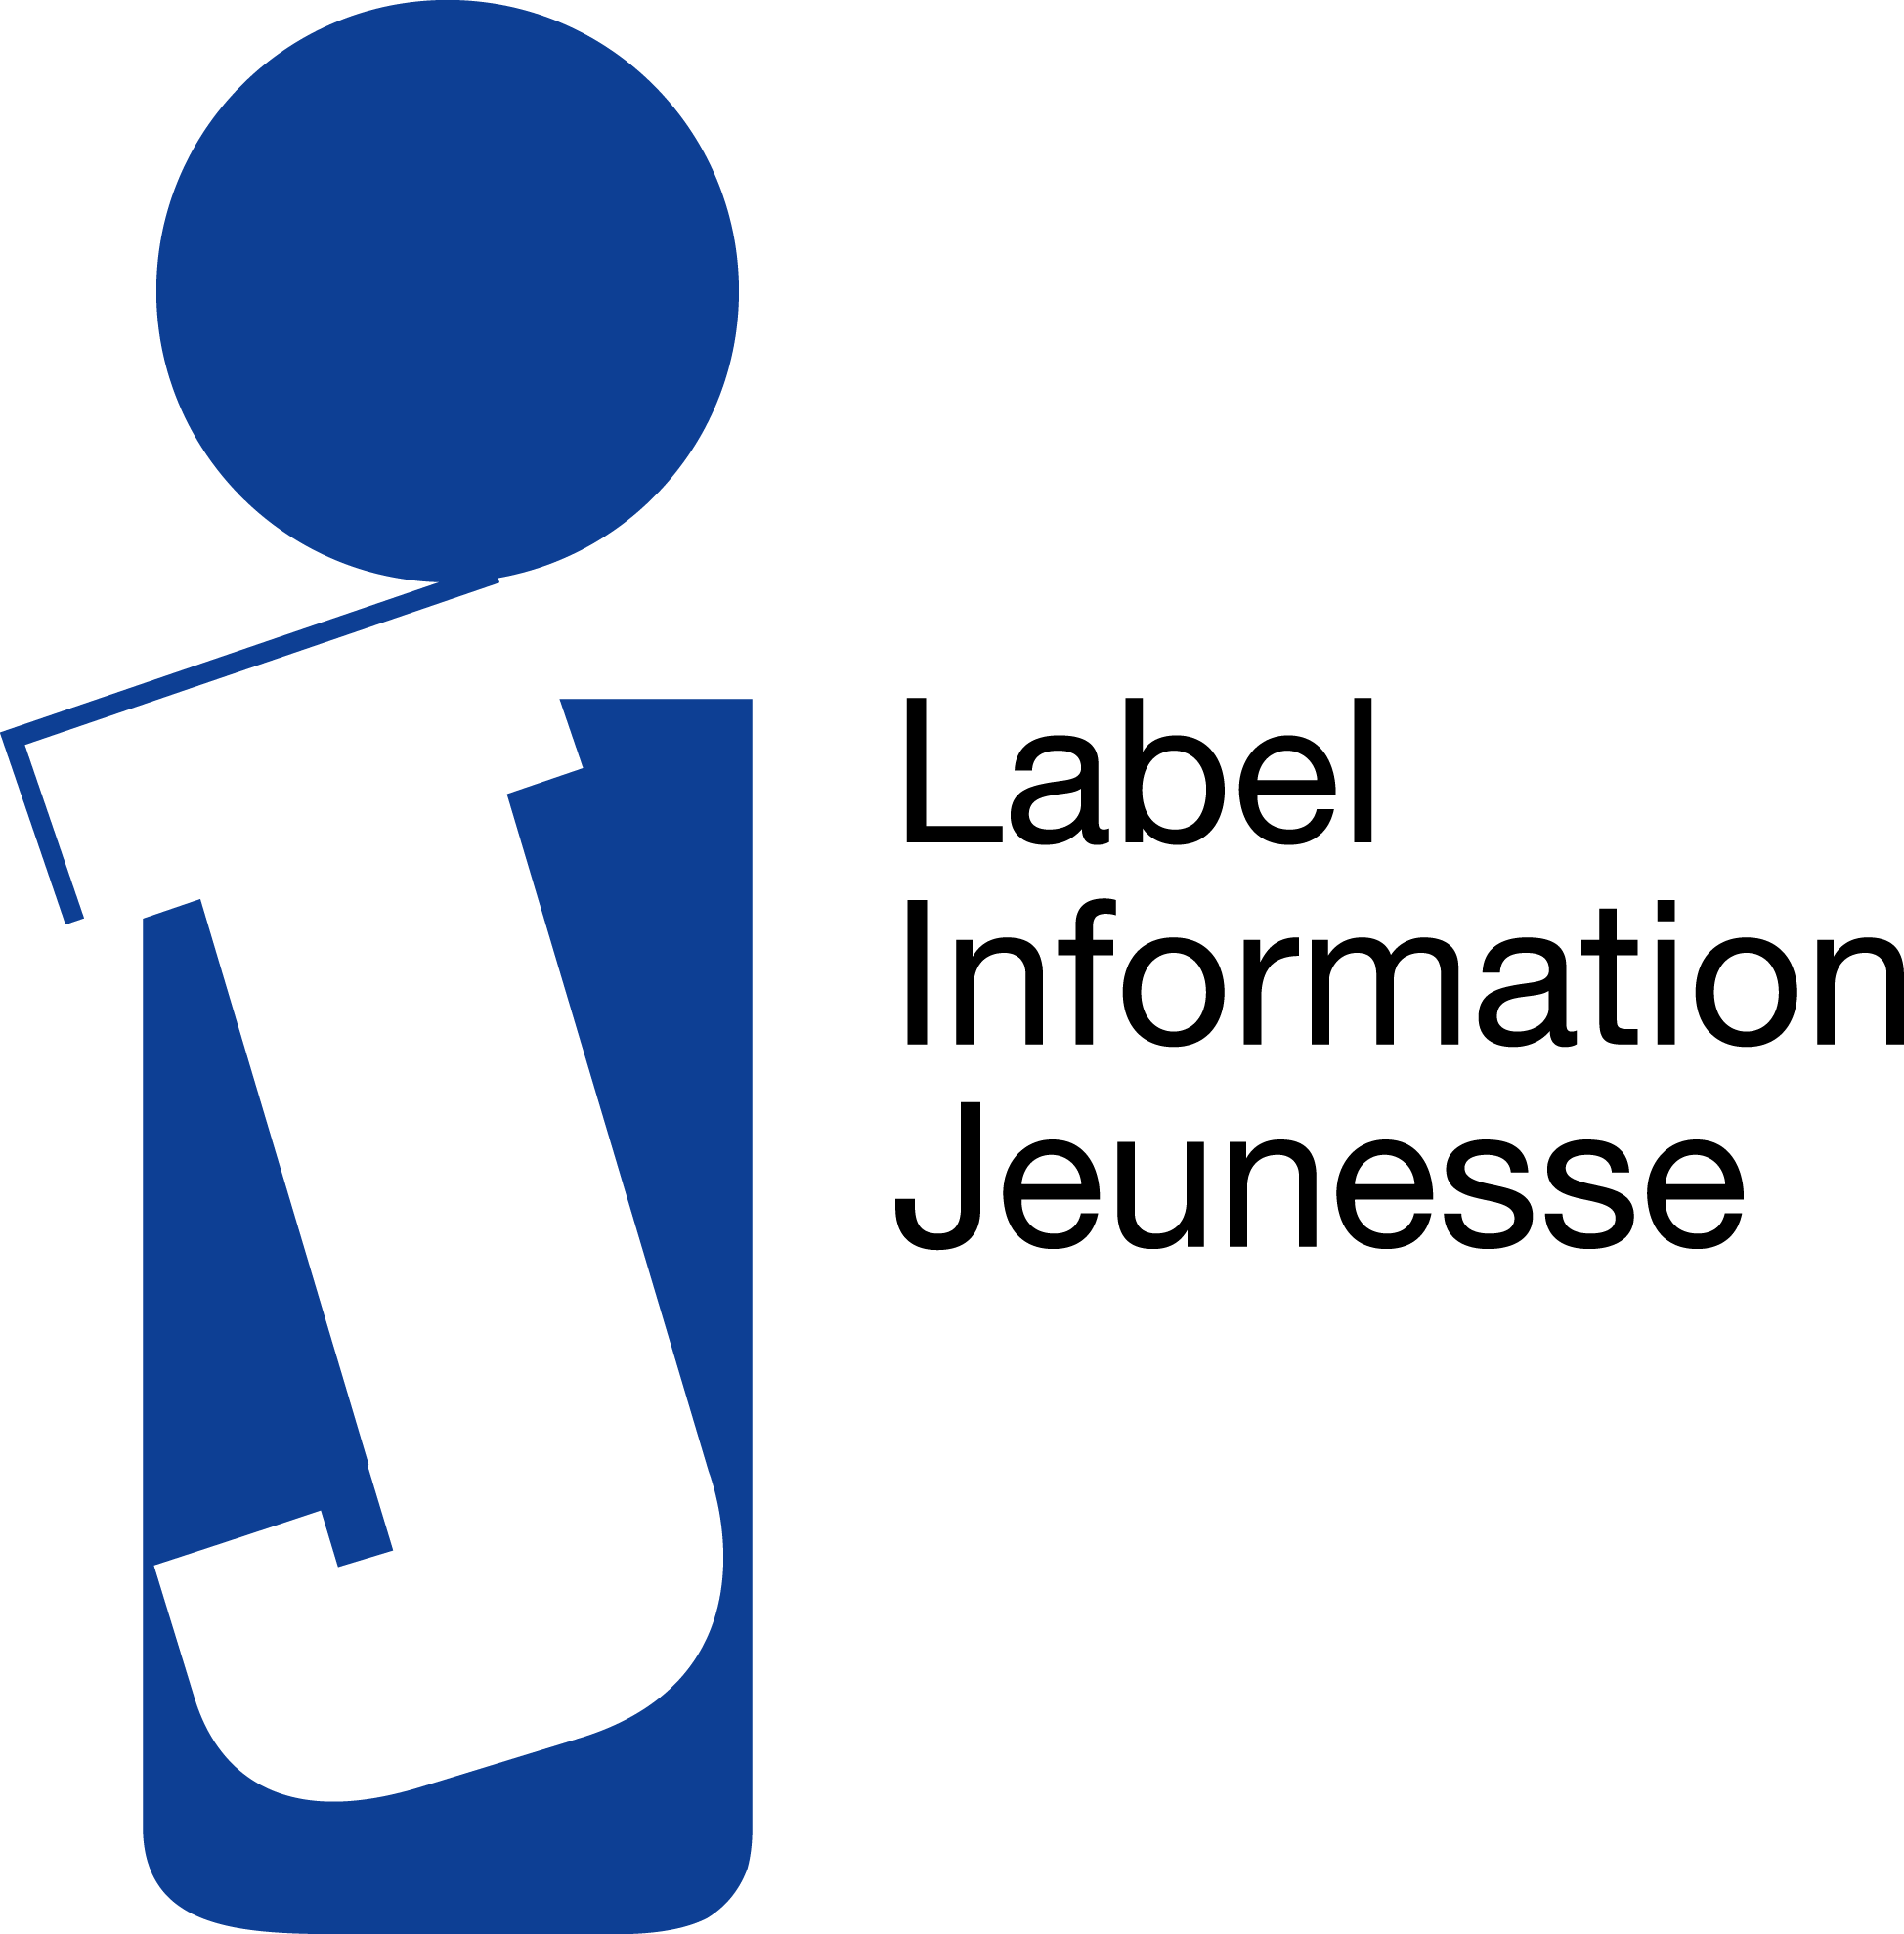 Logo du label Information jeunesse